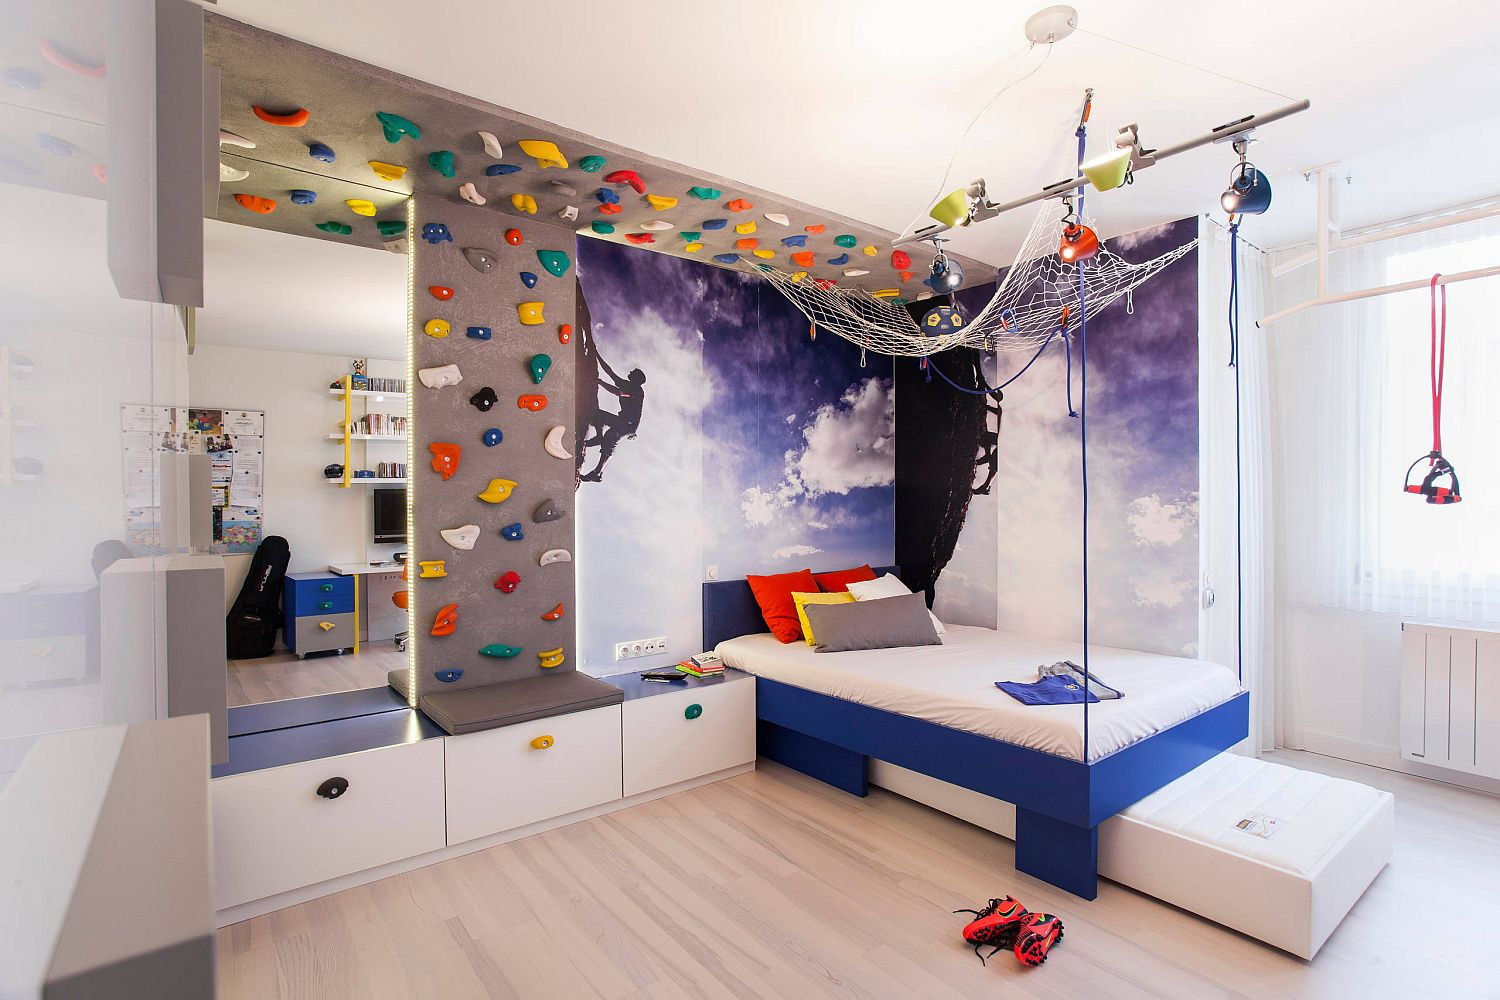 Moving the bed to the corner frees up space in the modern kids' bedroom with climbing wall